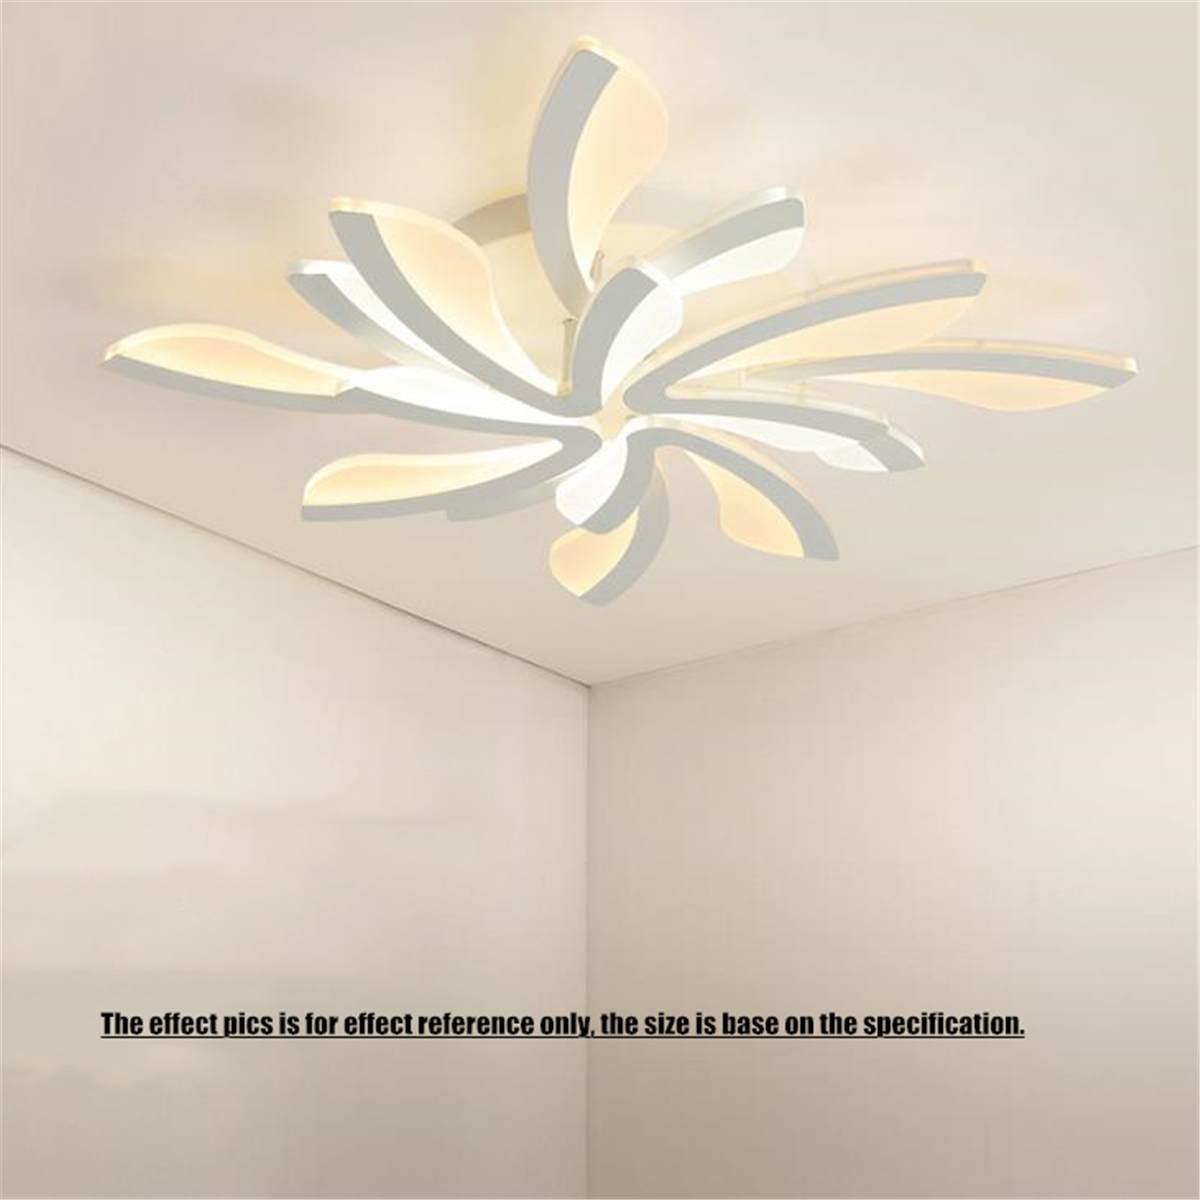 Acrylic Modern 8 Heads LED Ceiling Lights for Living Room Bedroom Dining Room Home Decor Ceiling Lamp Lighting Light FixturesAcrylic Modern 8 Heads LED Ceiling Lights for Living Room Bedroom Dining Room Home Decor Ceiling Lamp Lighting Light Fixtures